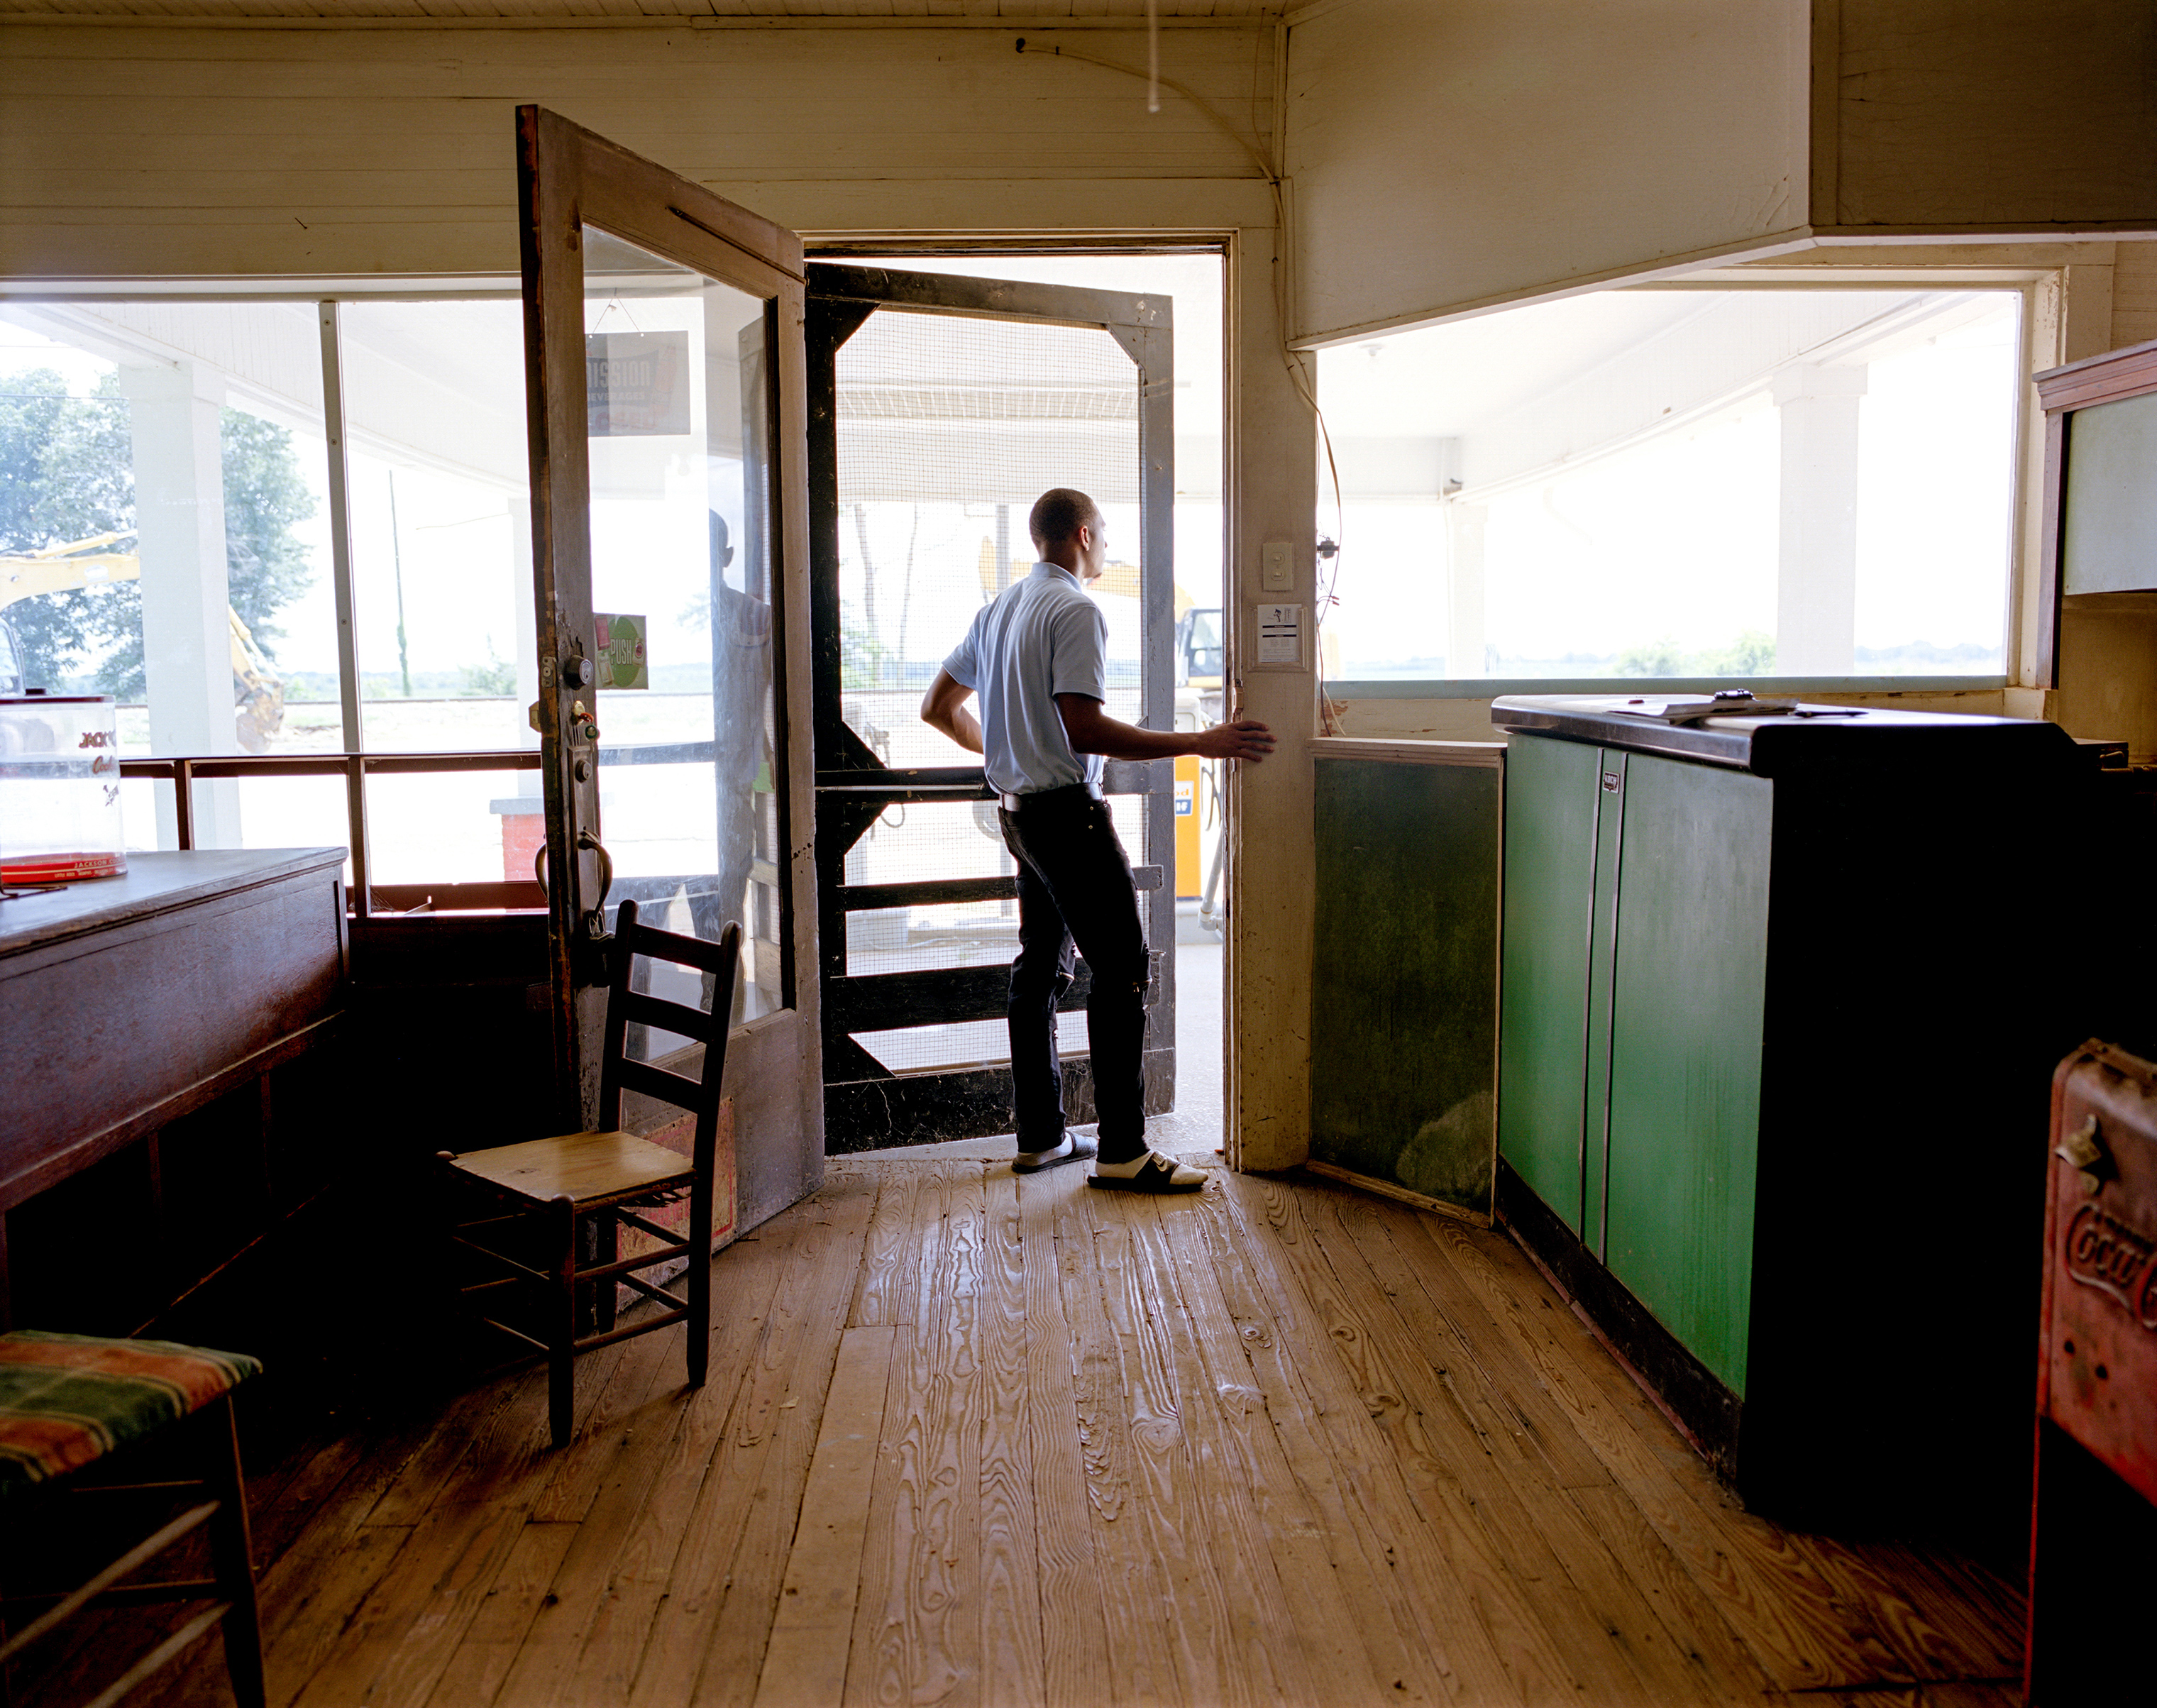 Rodkevian Thomas, an intern with the Emmett Till Interpretive Center, visits the restored service station adjacent to the dilapidated Bryant's Grocery in Money, Miss. On August 24, 1955, 14-year-old Emmett Till was visiting Bryant's Grocery when he was accused of violating the racial customs of the time by whistling at a white woman. He was then kidnapped, beaten and, on Aug. 28, lynched.